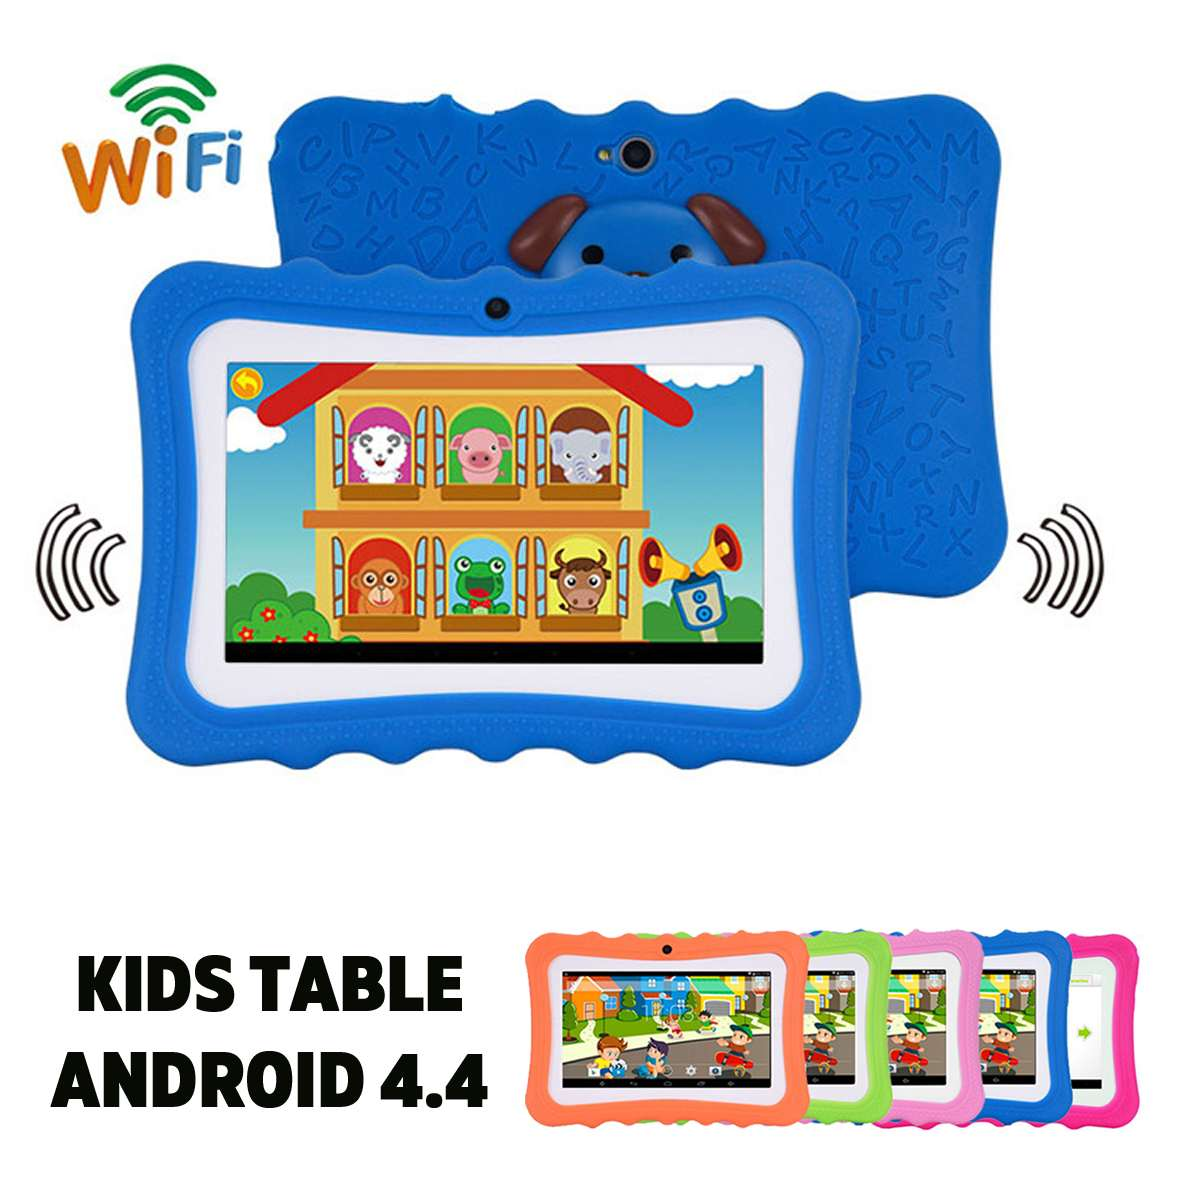 7 Inch 8GB Wifi bluetooth Android 4.4 Kids Tablet PC HD 1024x600 Quad Core Dual Camera TFT Display Child Children Gift Tablet7 Inch 8GB Wifi bluetooth Android 4.4 Kids Tablet PC HD 1024x600 Quad Core Dual Camera TFT Display Child Children Gift Tablet